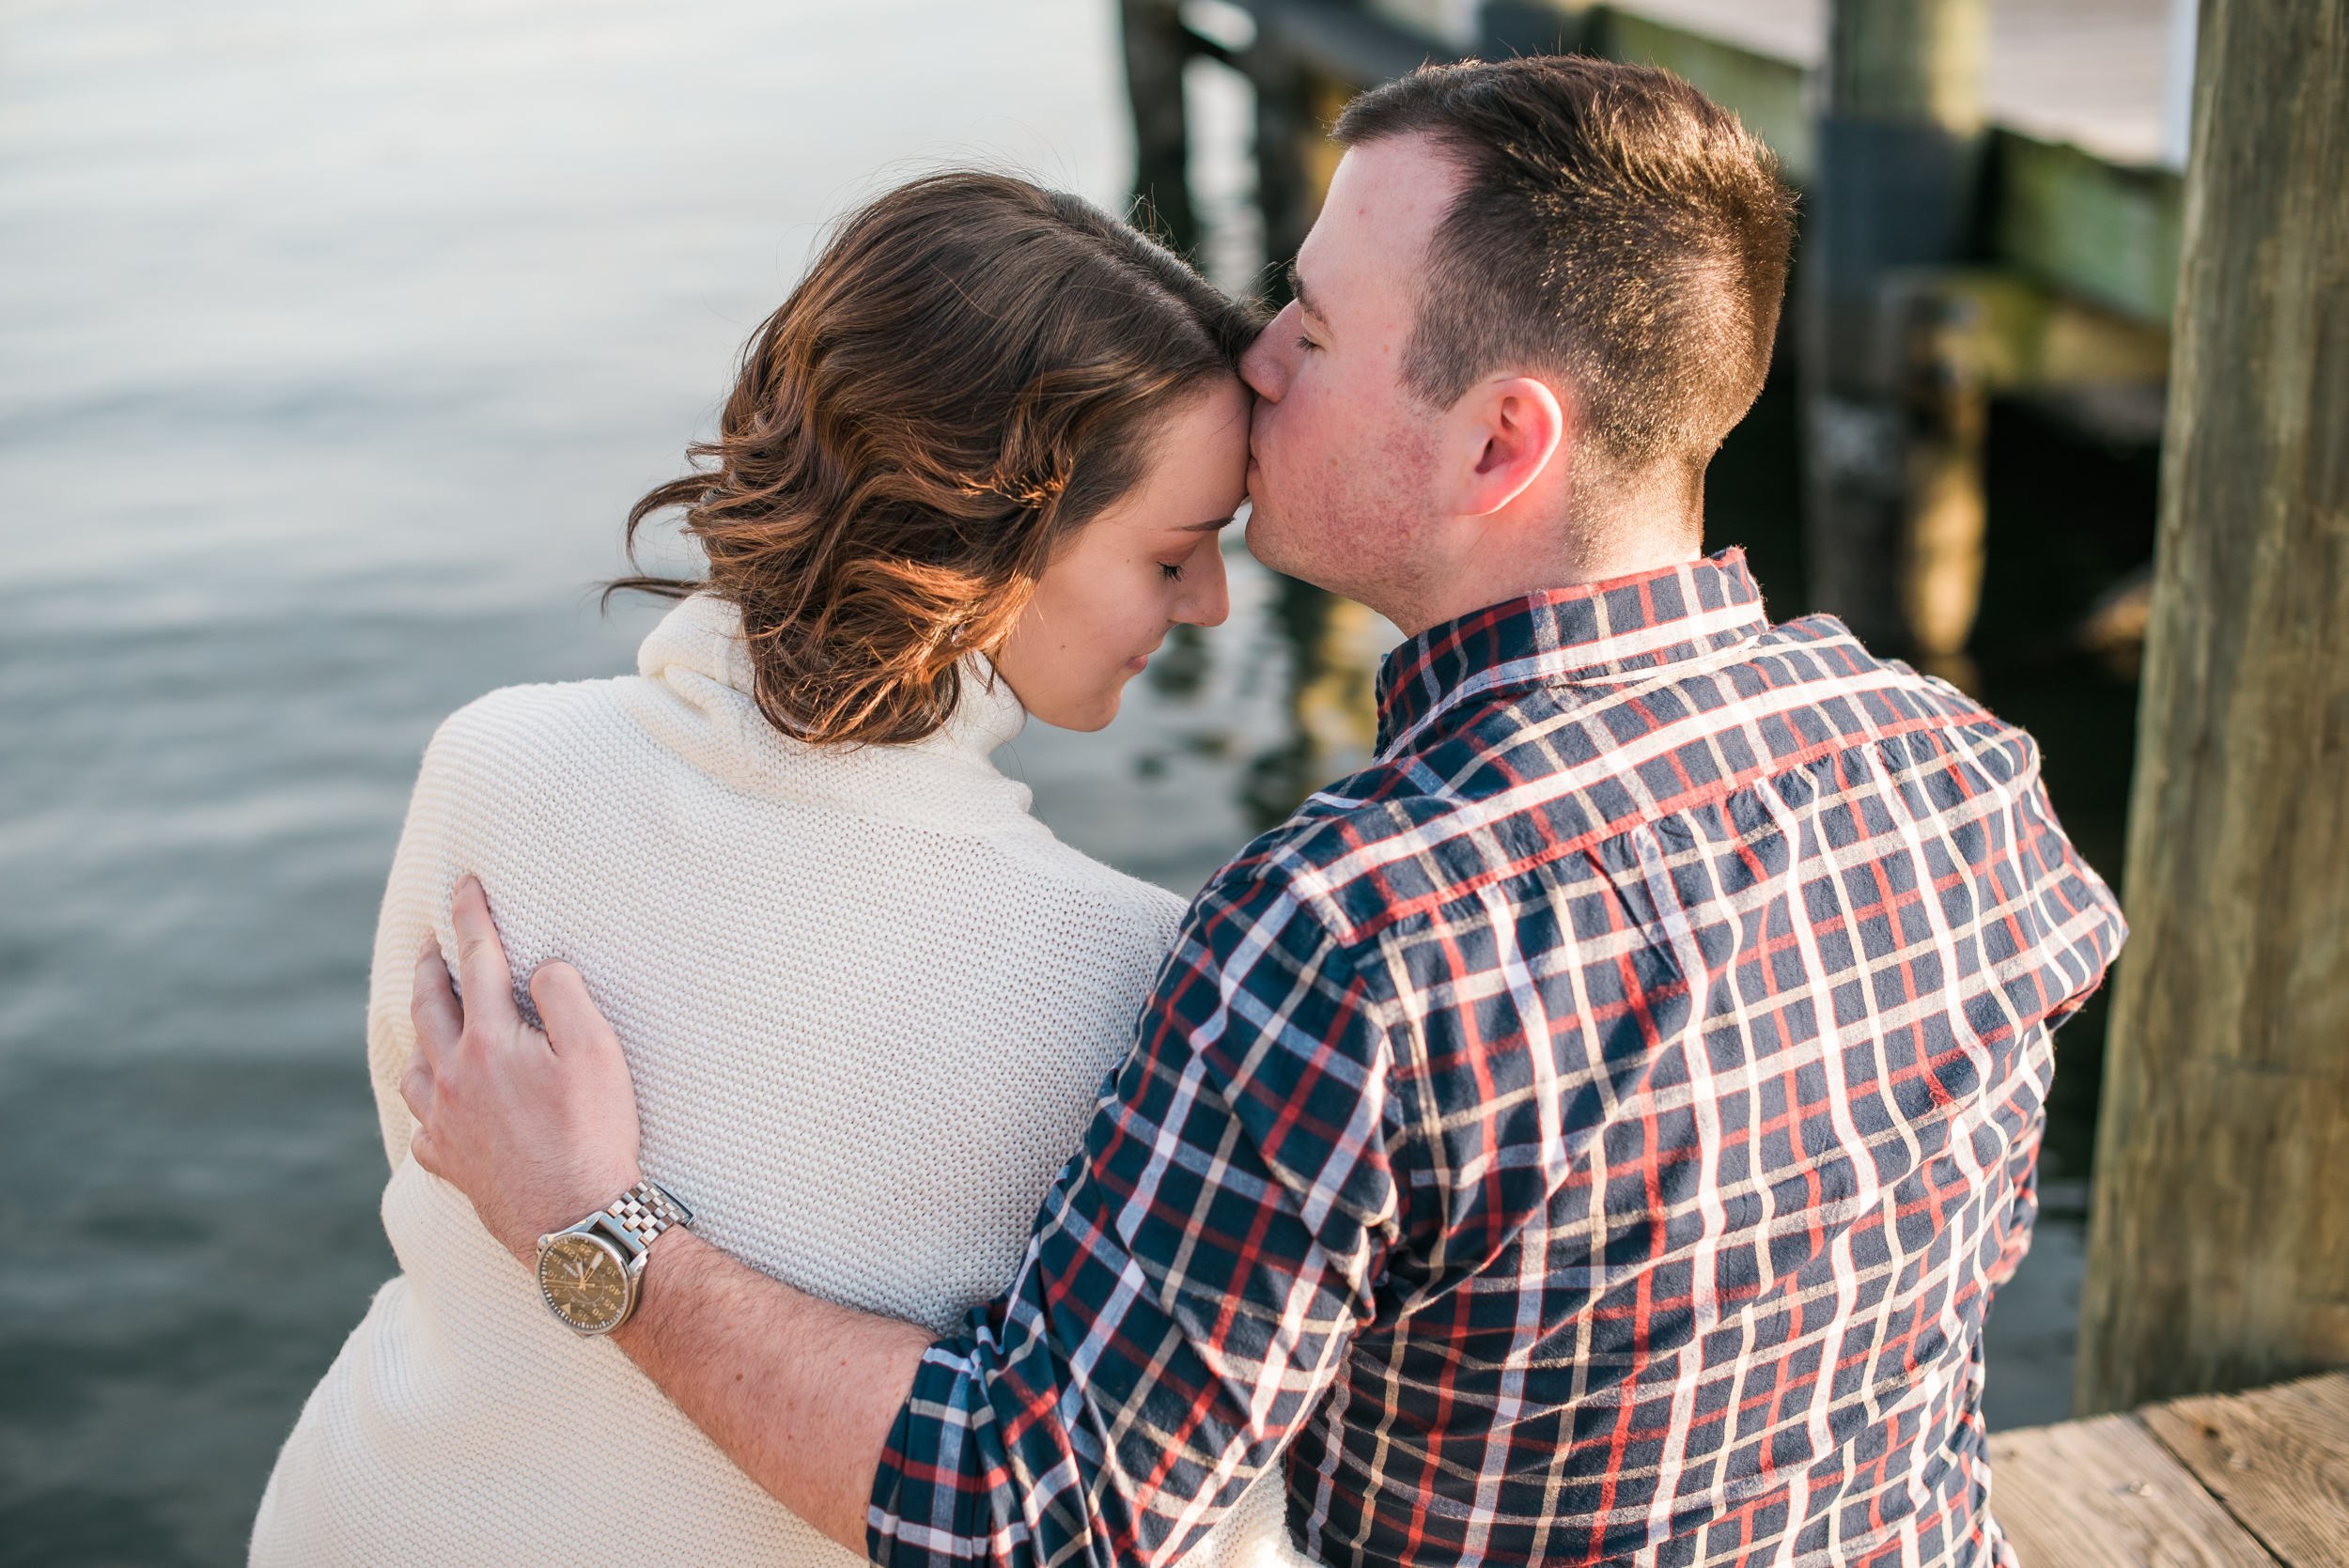 downtown-annapolis-engagement-session-chelsea-blanch-photography-4